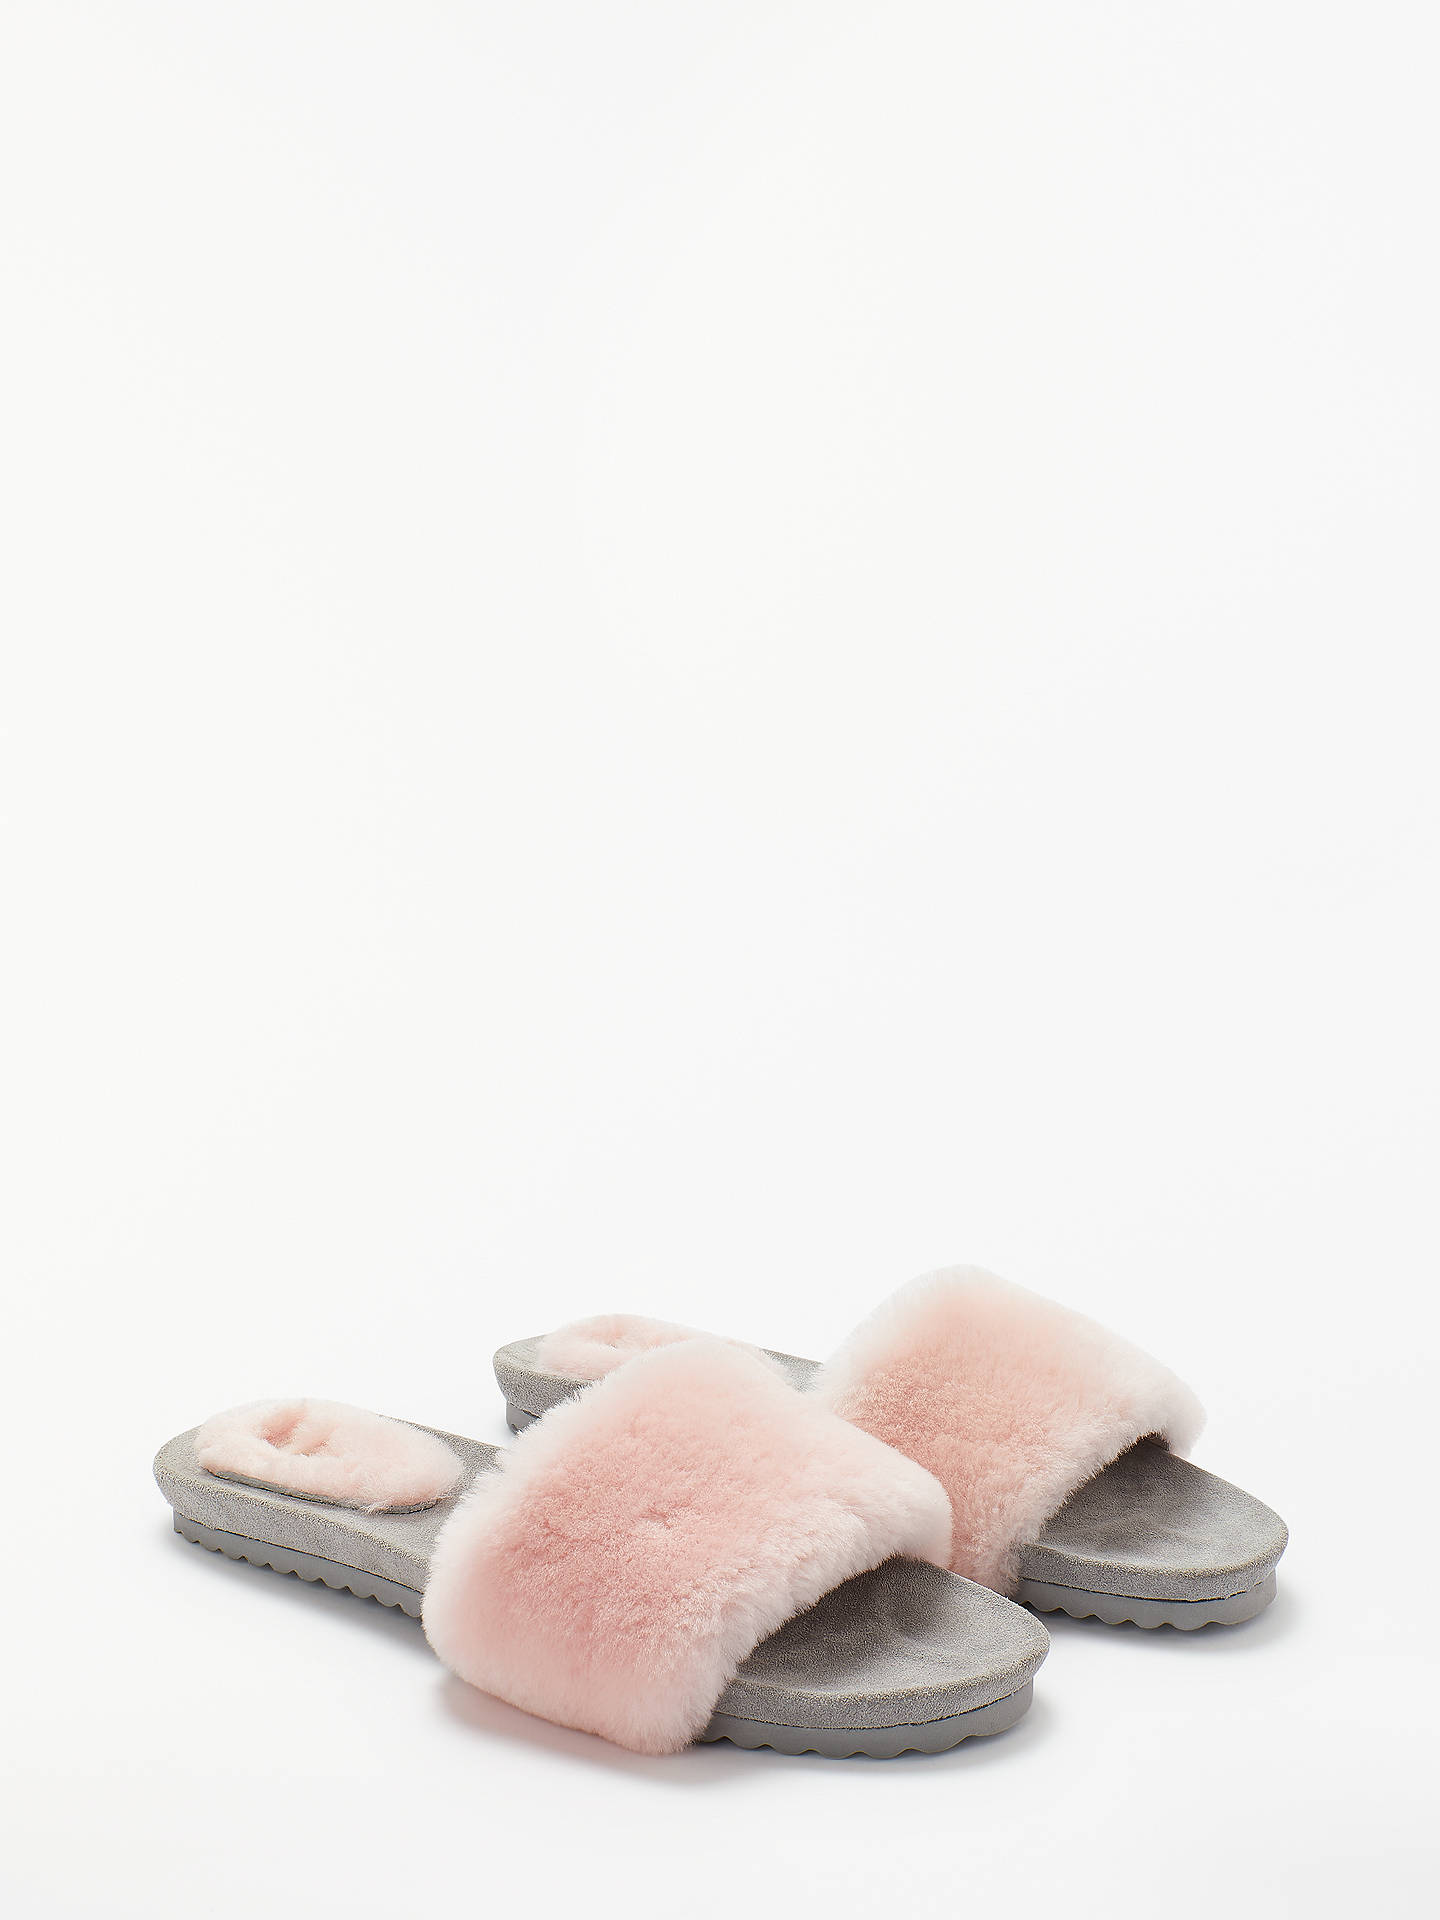 Buy Boden Shearling Lounge Slide Slippers, Chalky Pink, 6 Online at johnlewis.com